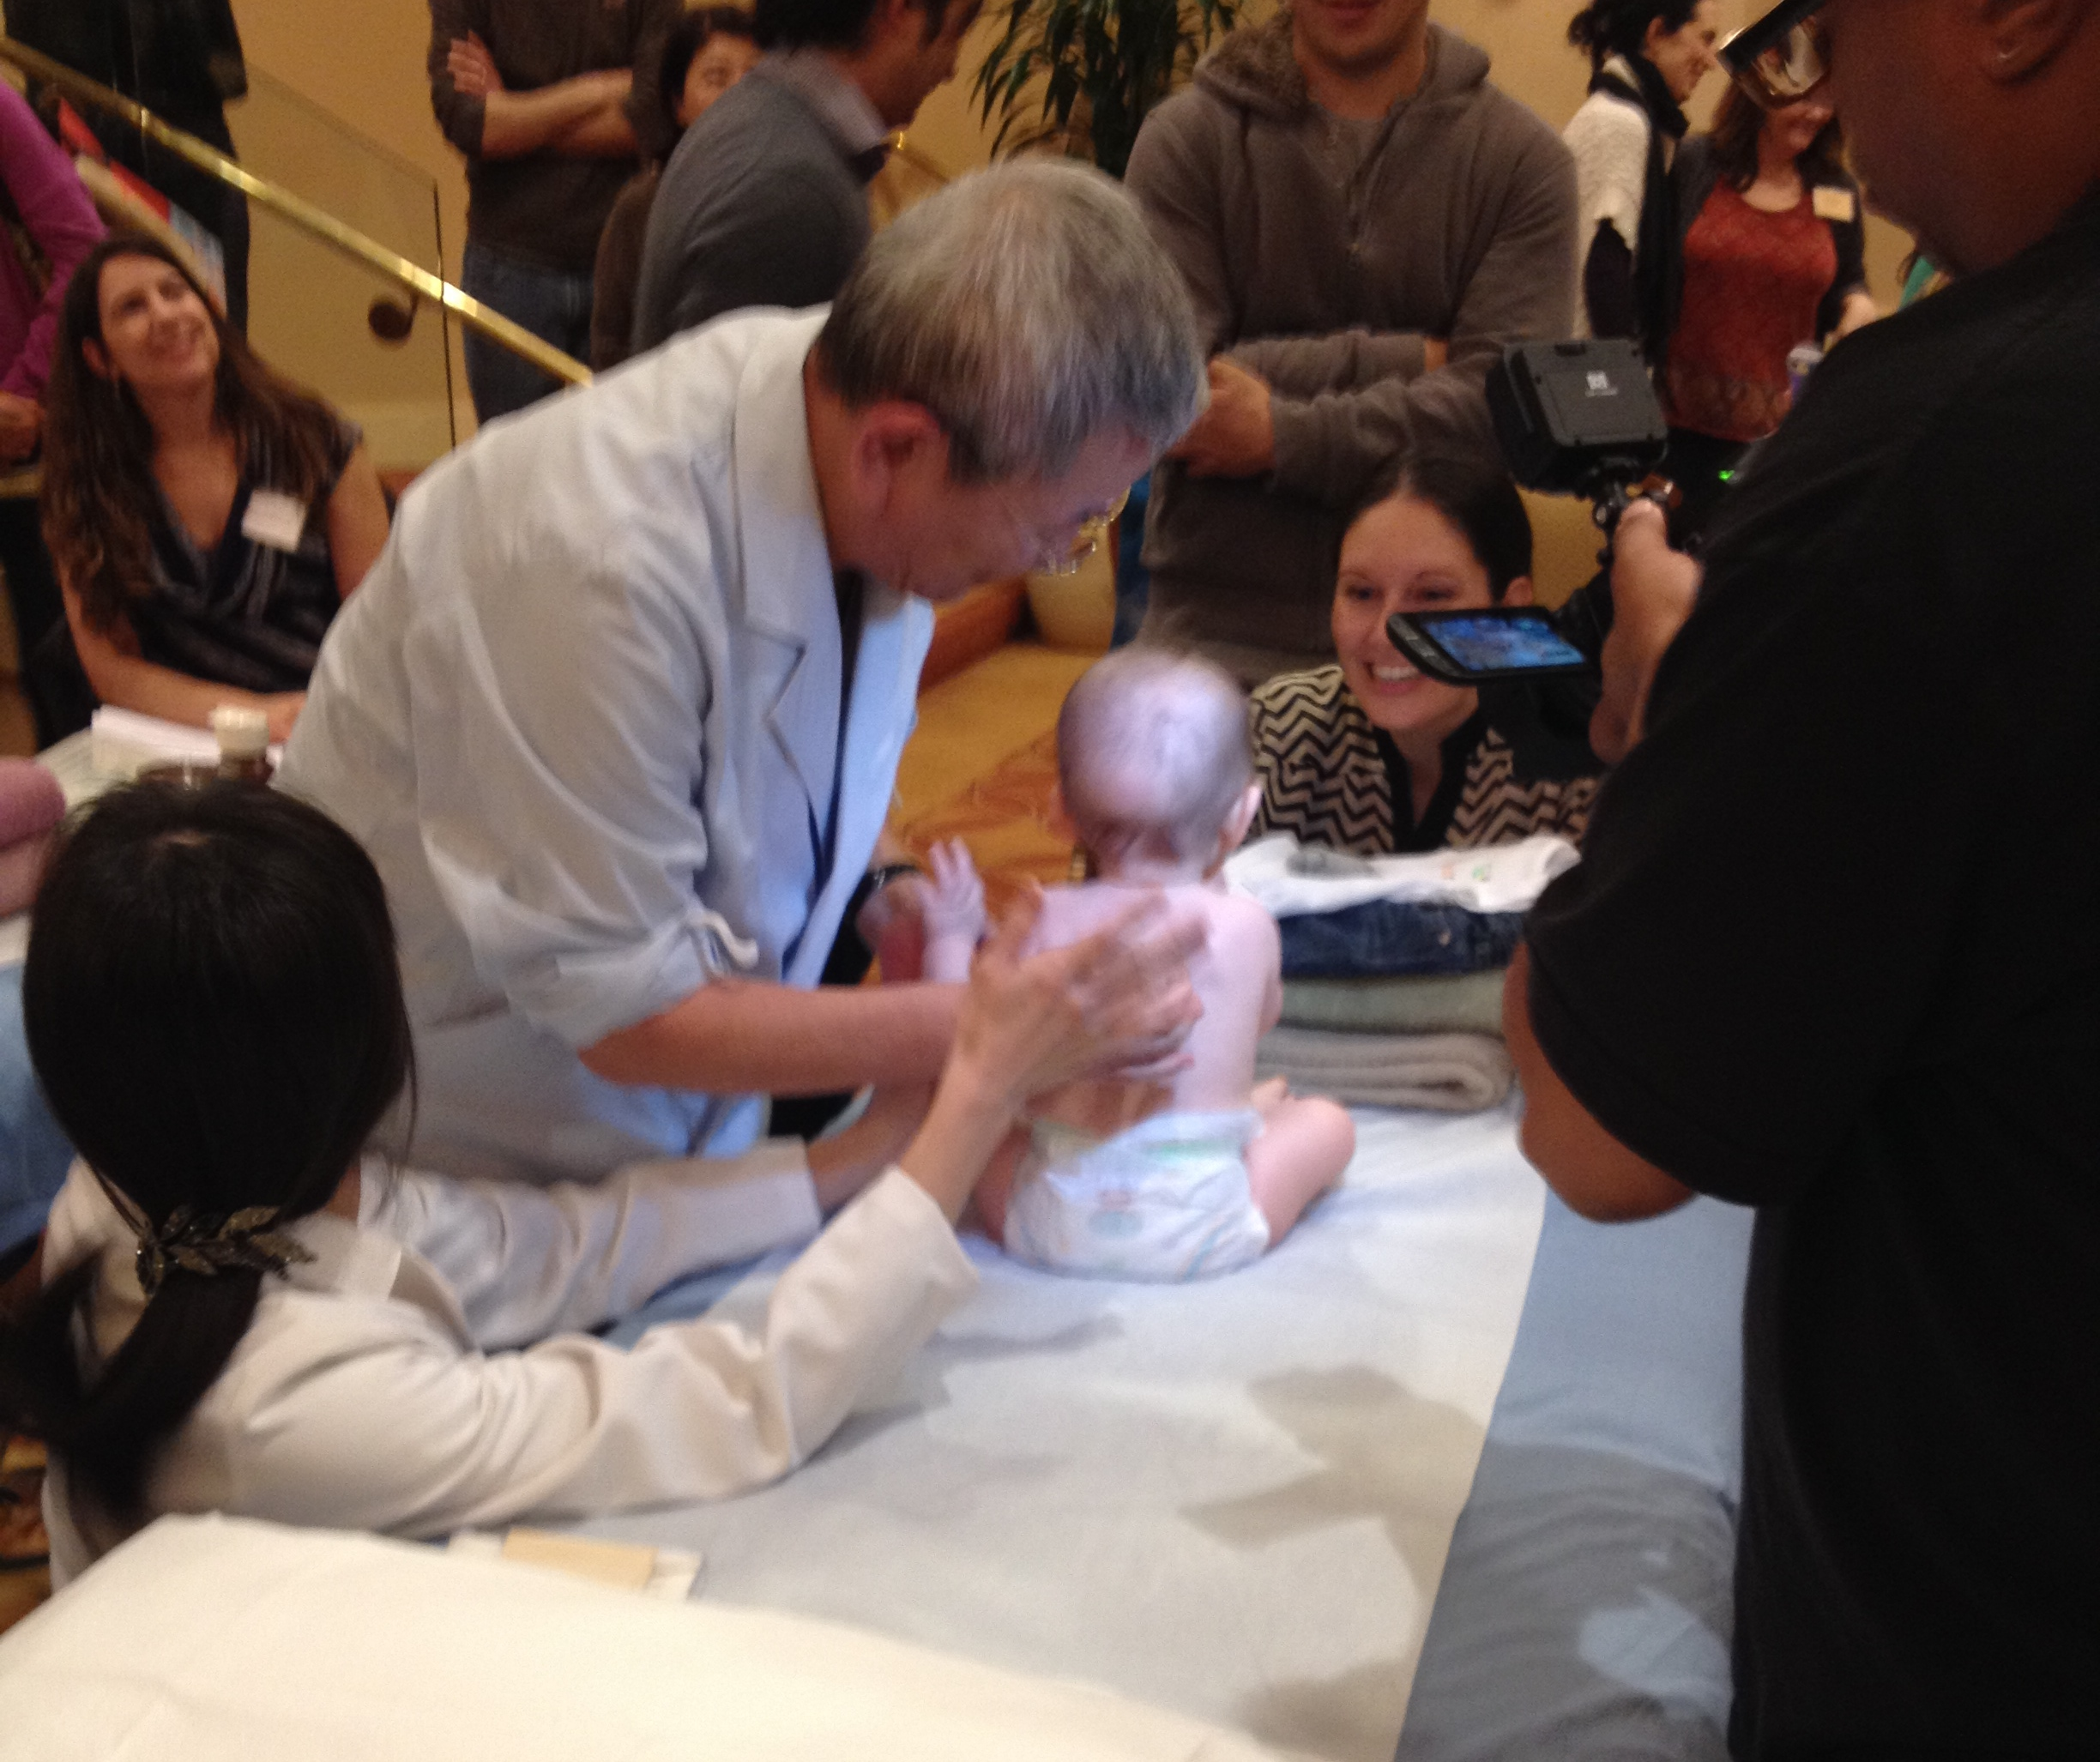 Ikeda Sensei treating a pediatric patient.  We happen to get two pediatric patients during our seminar.  What a treat!